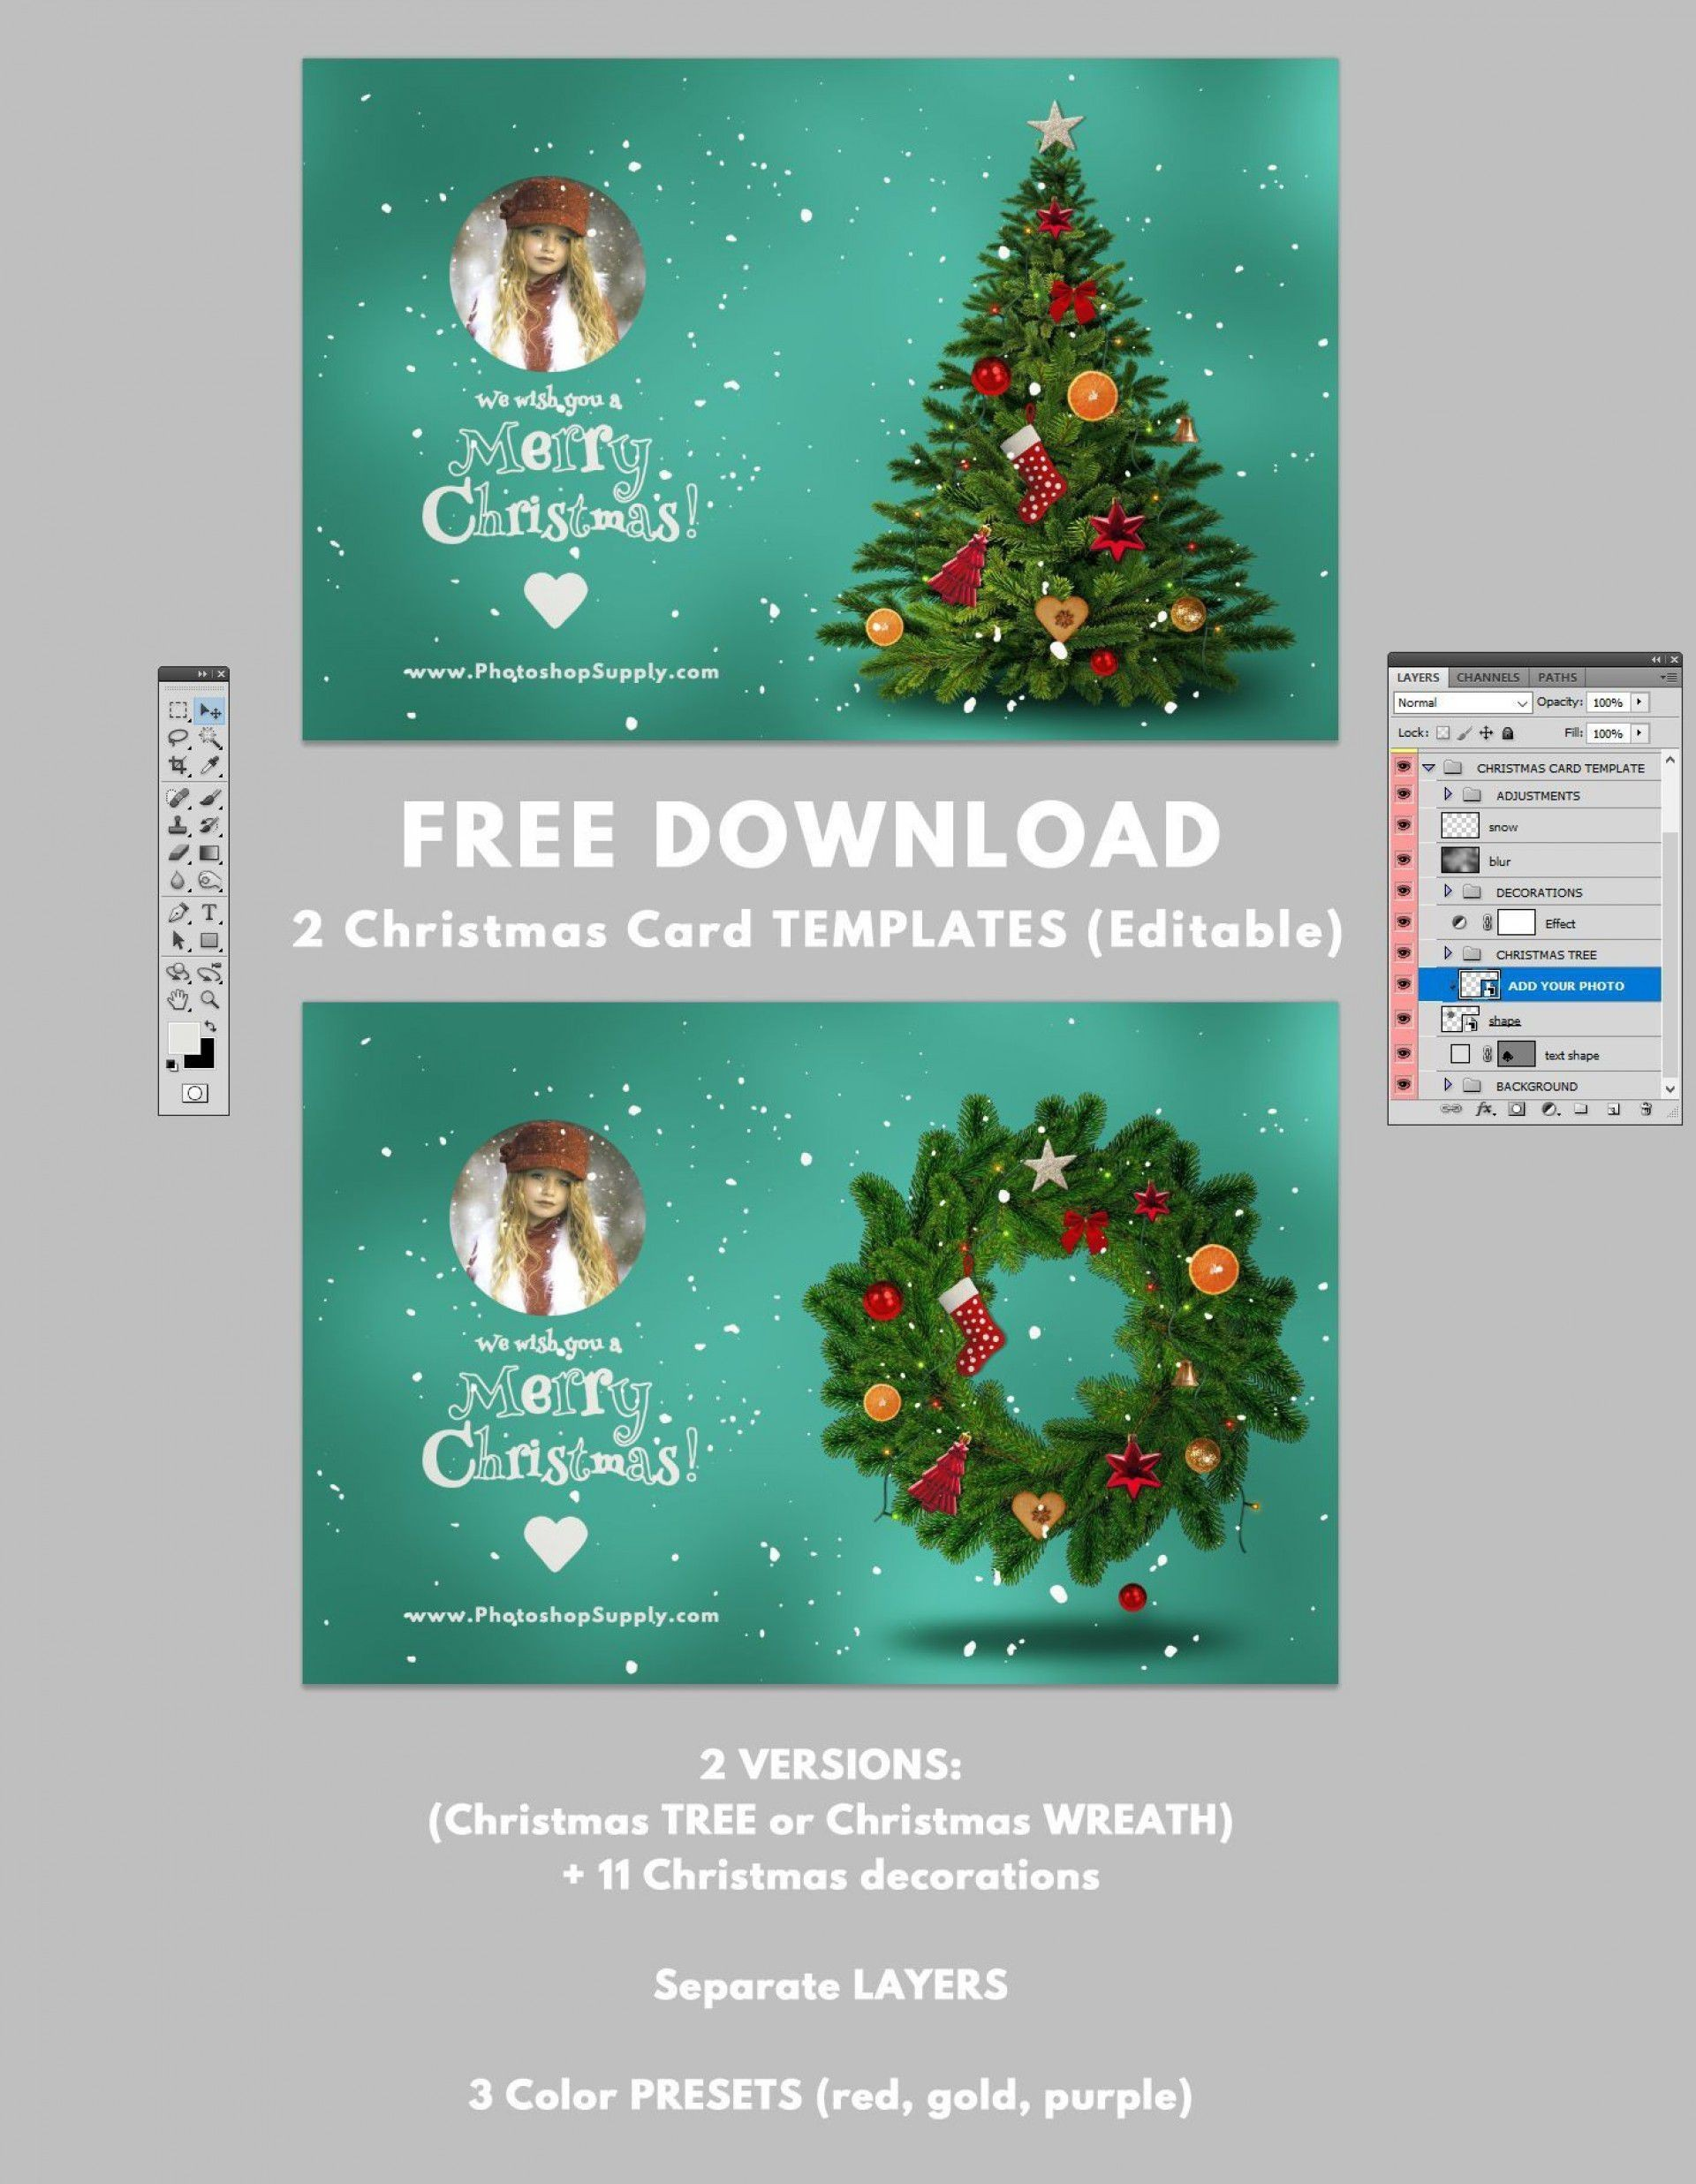 000 Frightening Christma Card Template Free Download High Definition  Photo Xma Place1920